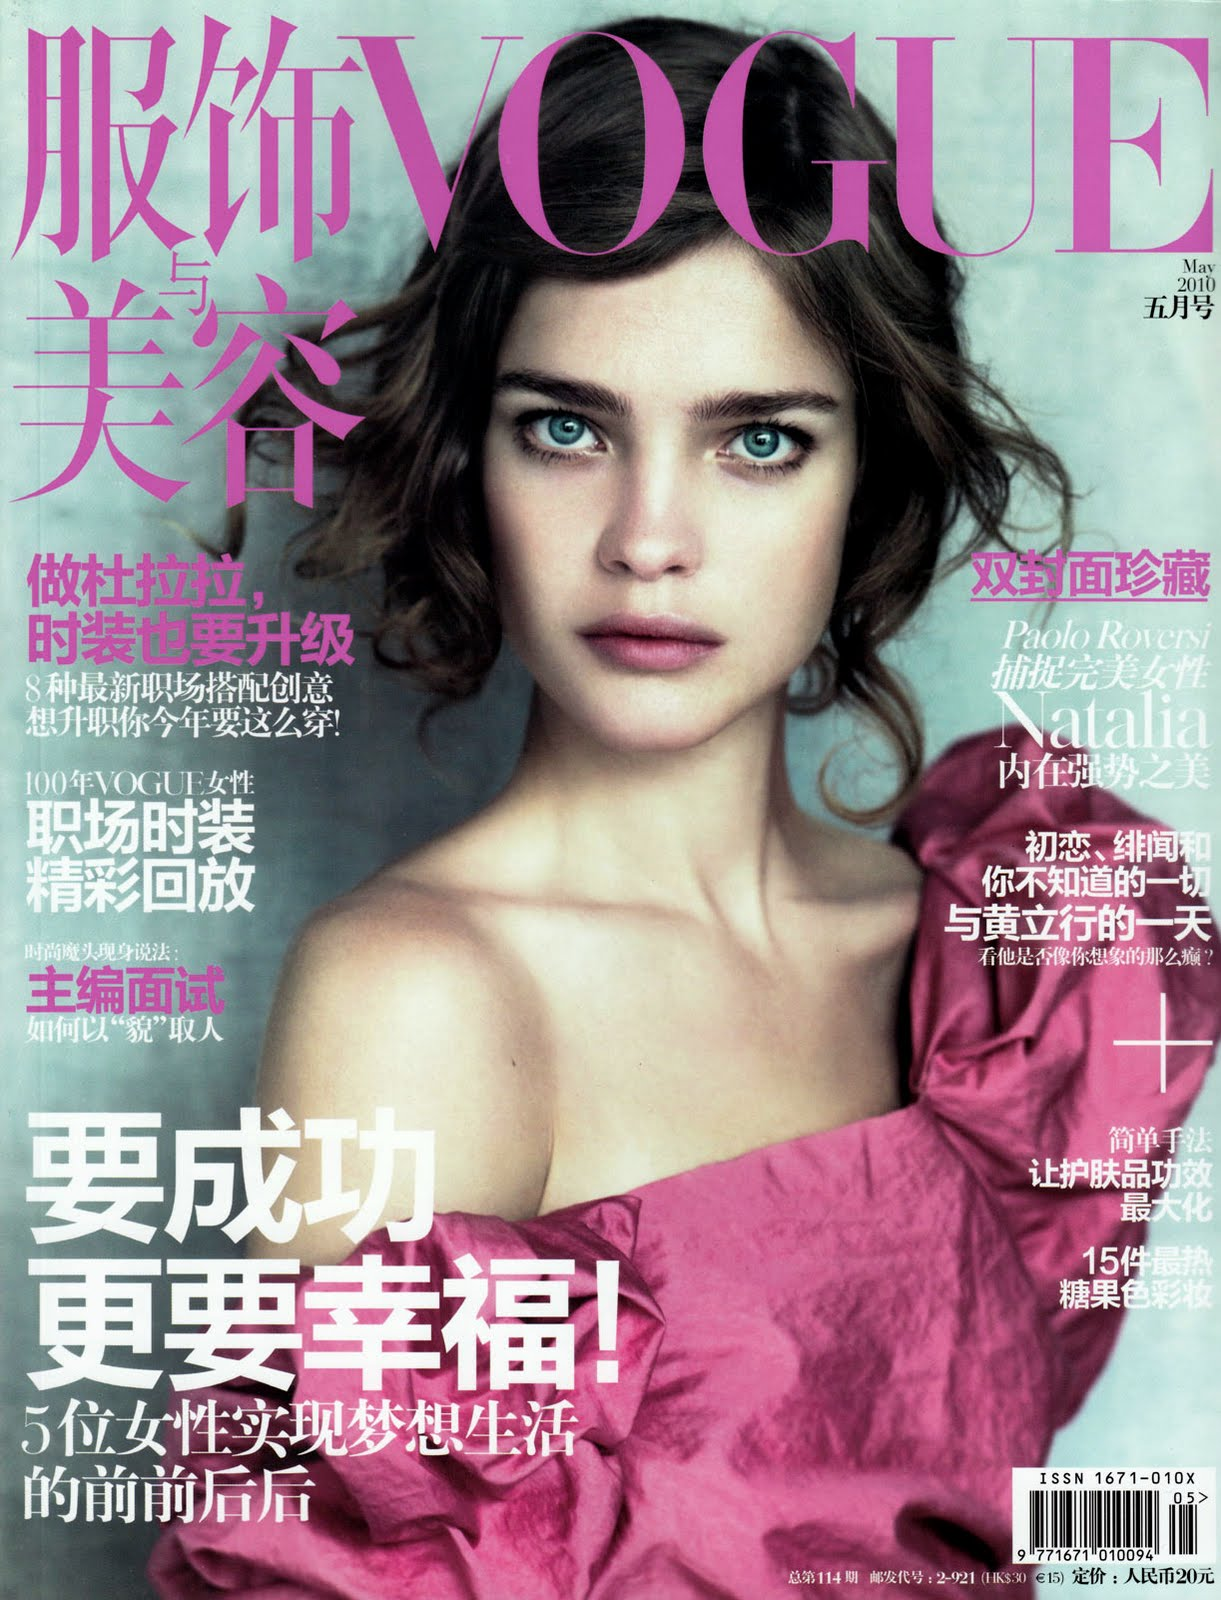 http://1.bp.blogspot.com/_5G_ghuZrdQk/TC3P6-ZCN-I/AAAAAAAAA7Y/3IRPrQM03Gc/s1600/natalia+vodianova+may+2010+vogue+china.jpg